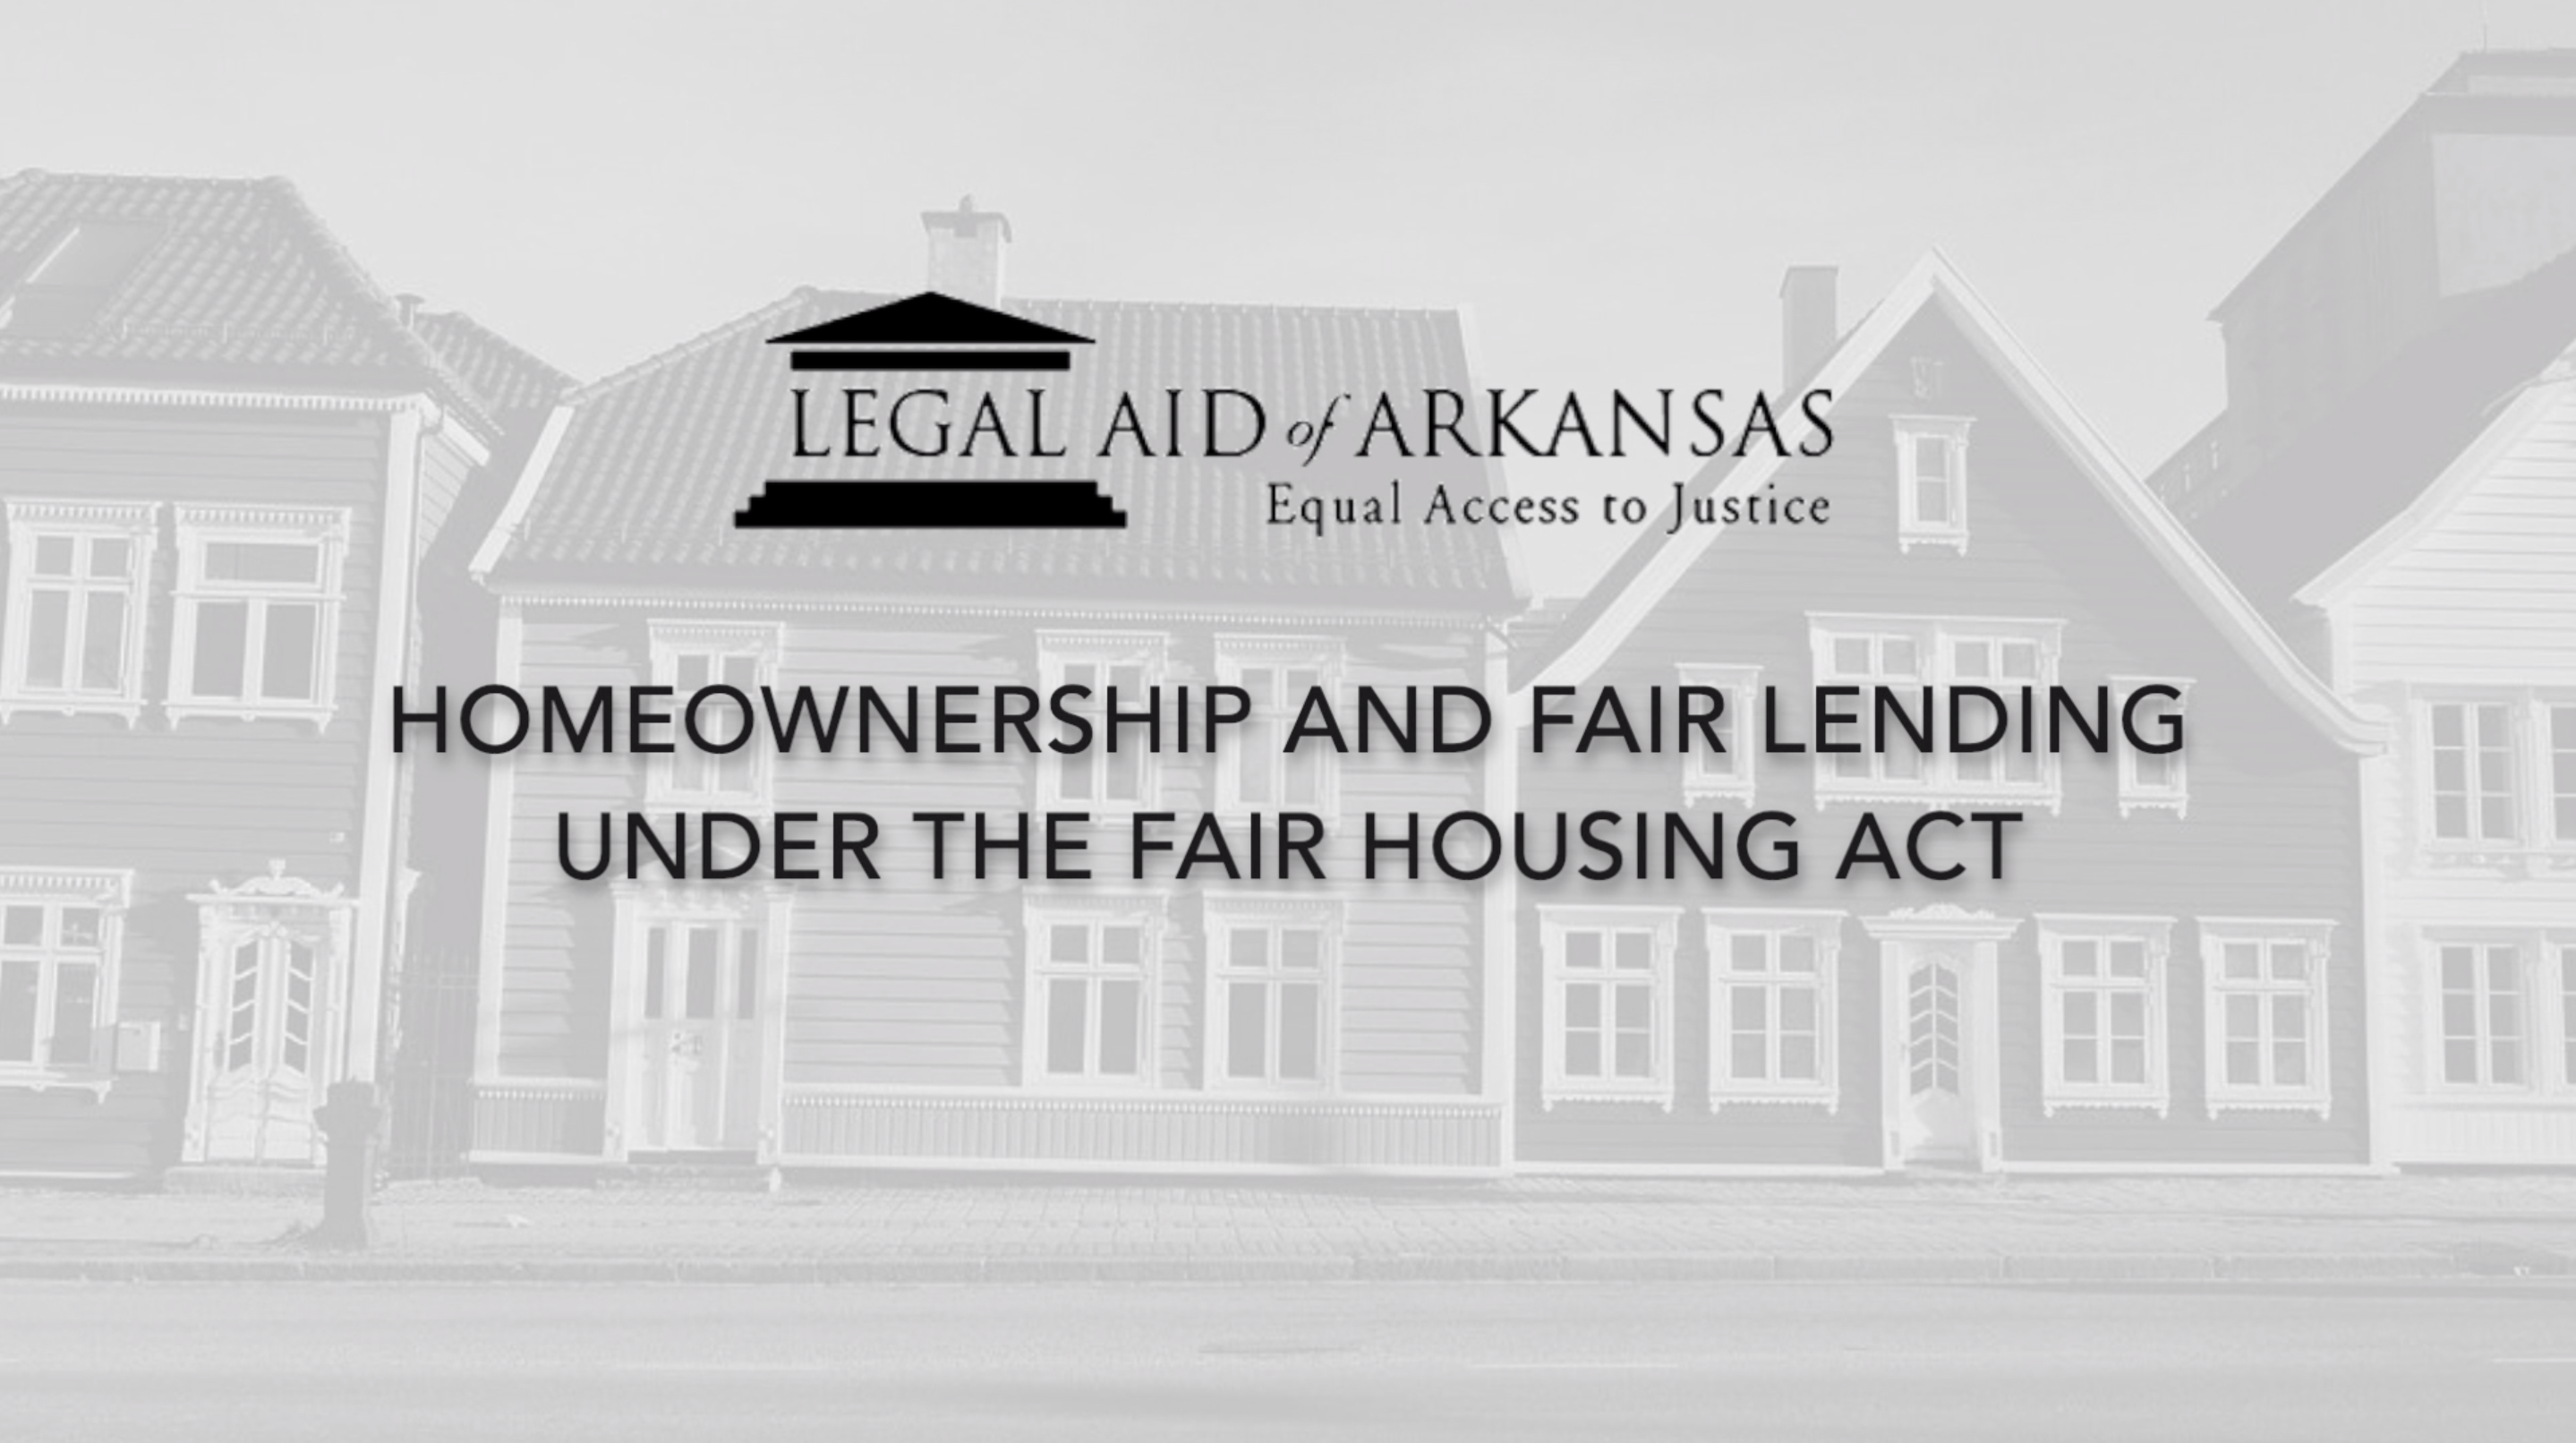 VIDEO - Homeownership and Fair Lending Under the Fair Housing Act